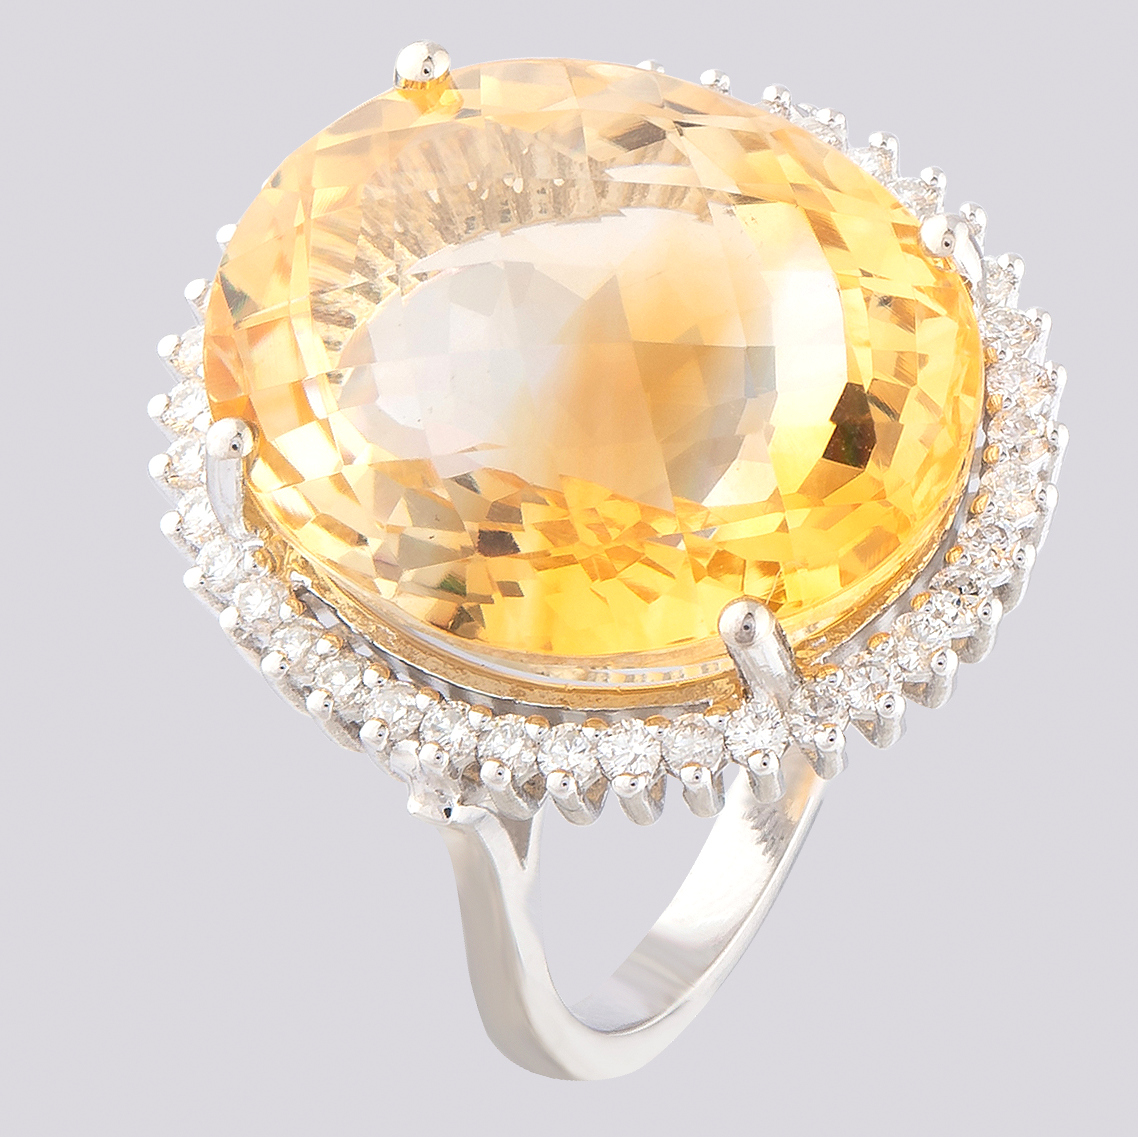 14K White Gold Large Cluster Ring 17,90 Ct. Citrine - 0,55 Ct. Diamond